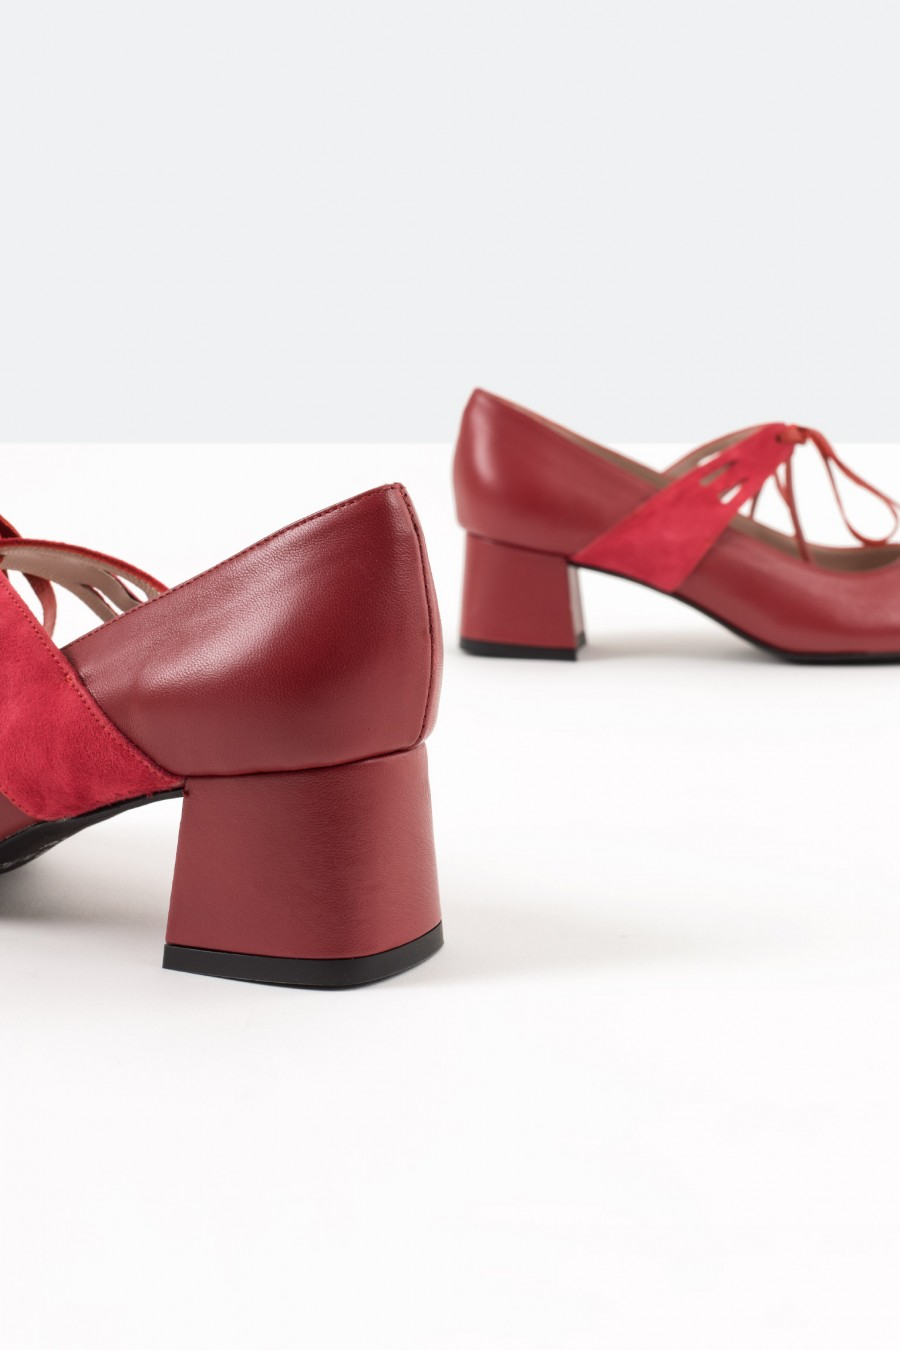 Red leather shoes with red suede straps